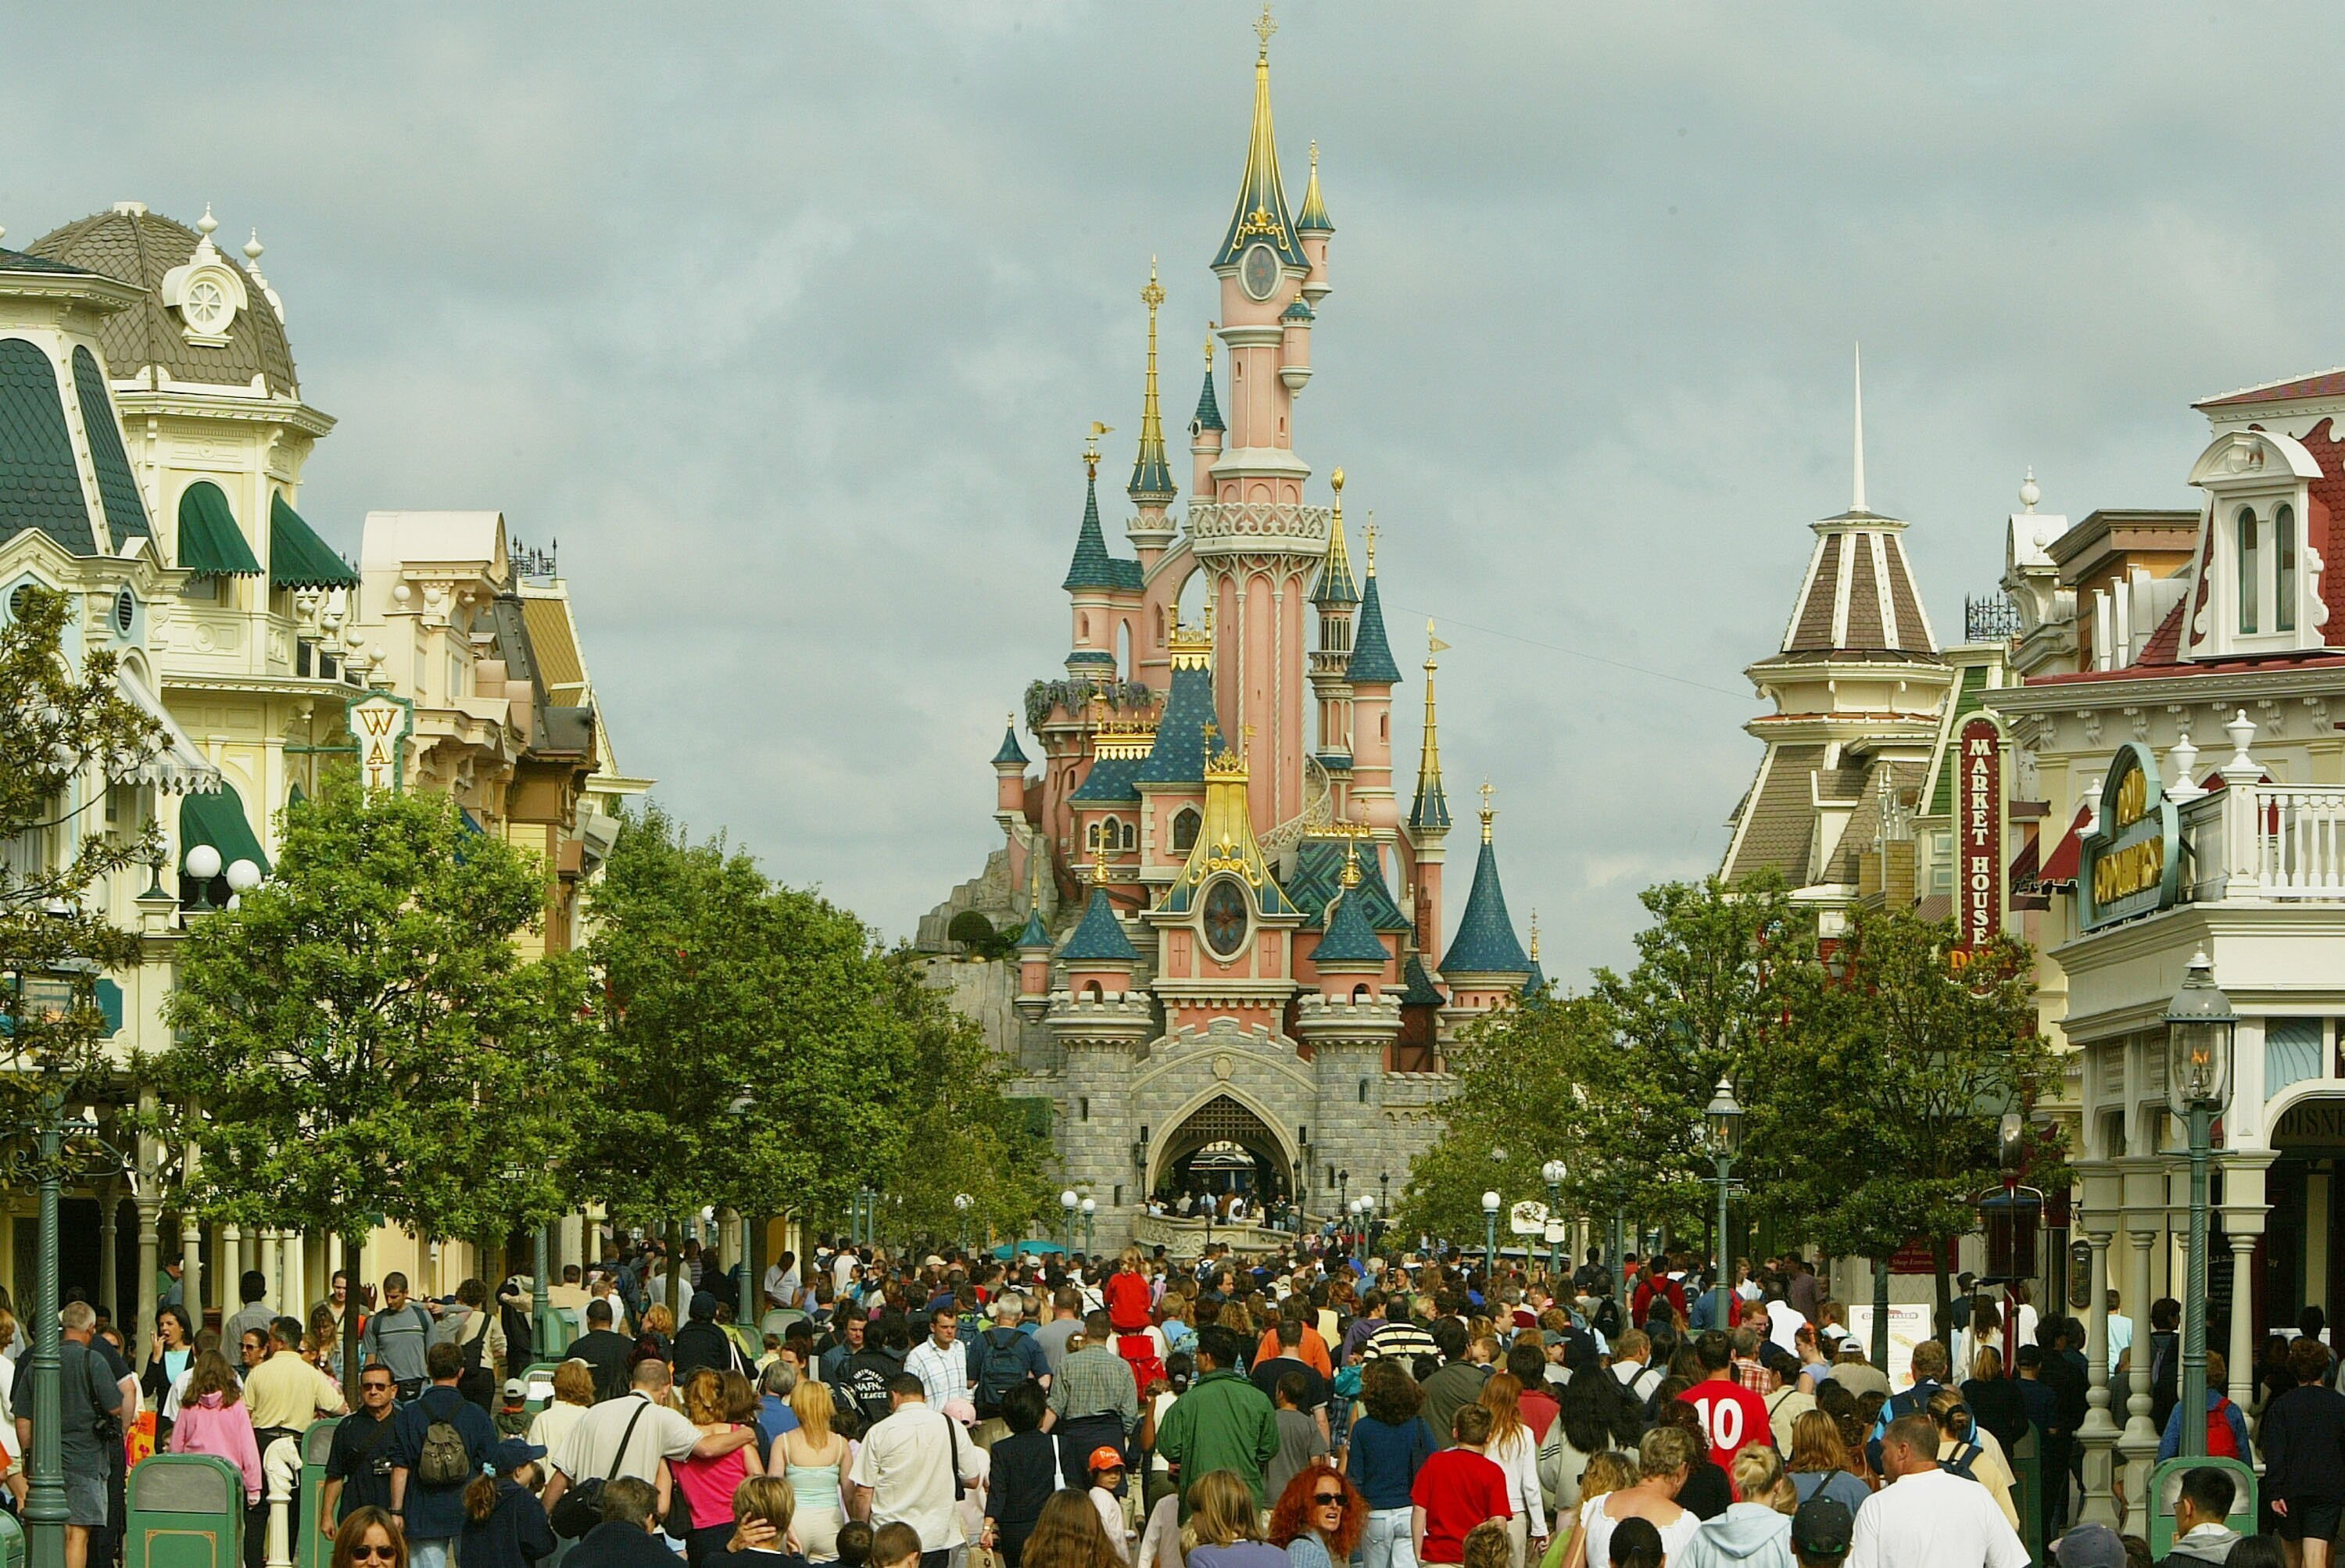 Disneyland Paris with Cinderella's castle in the background | Photo: Getty Images